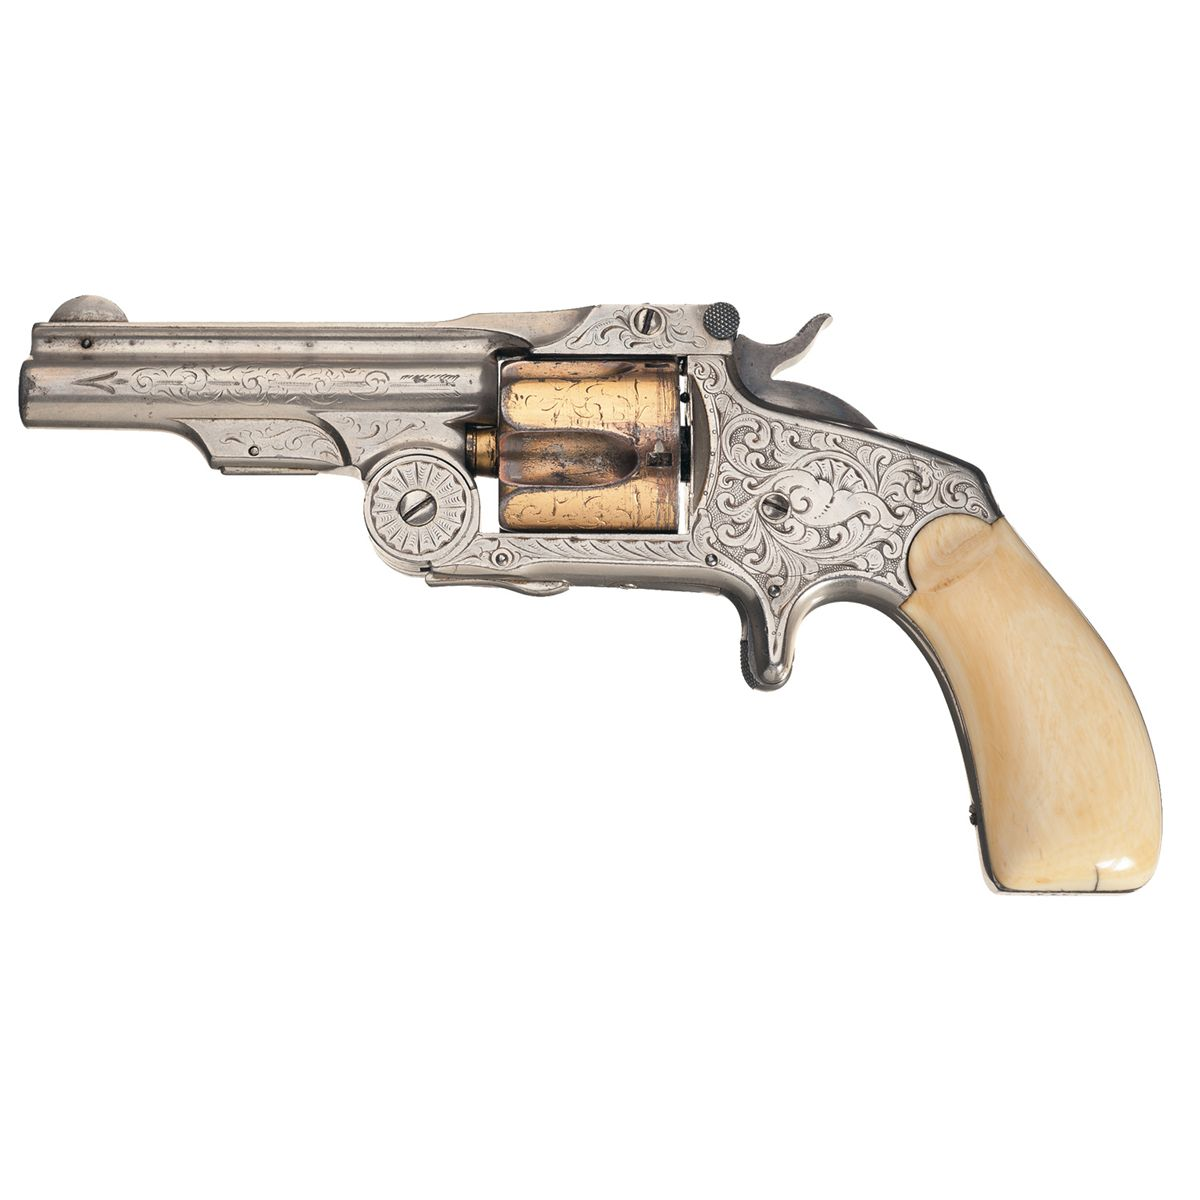 Inscribed, New York Engraved, Smith & Wesson First Model